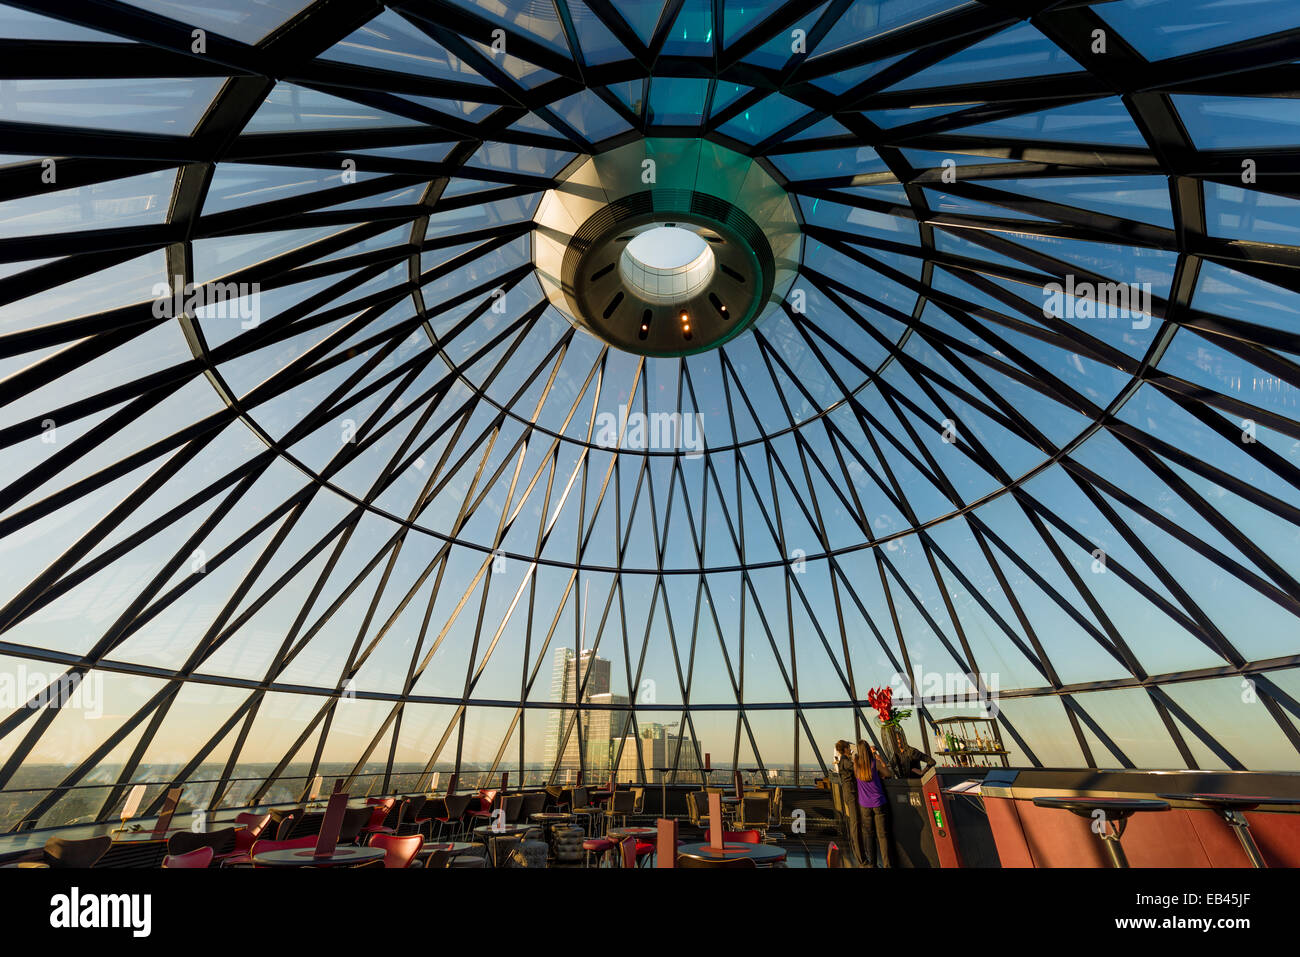 Interior of the Searcys restaurant and entertaining space at 30 St Mary Axe in London, otherwise known as The Gherkin, - Stock Image